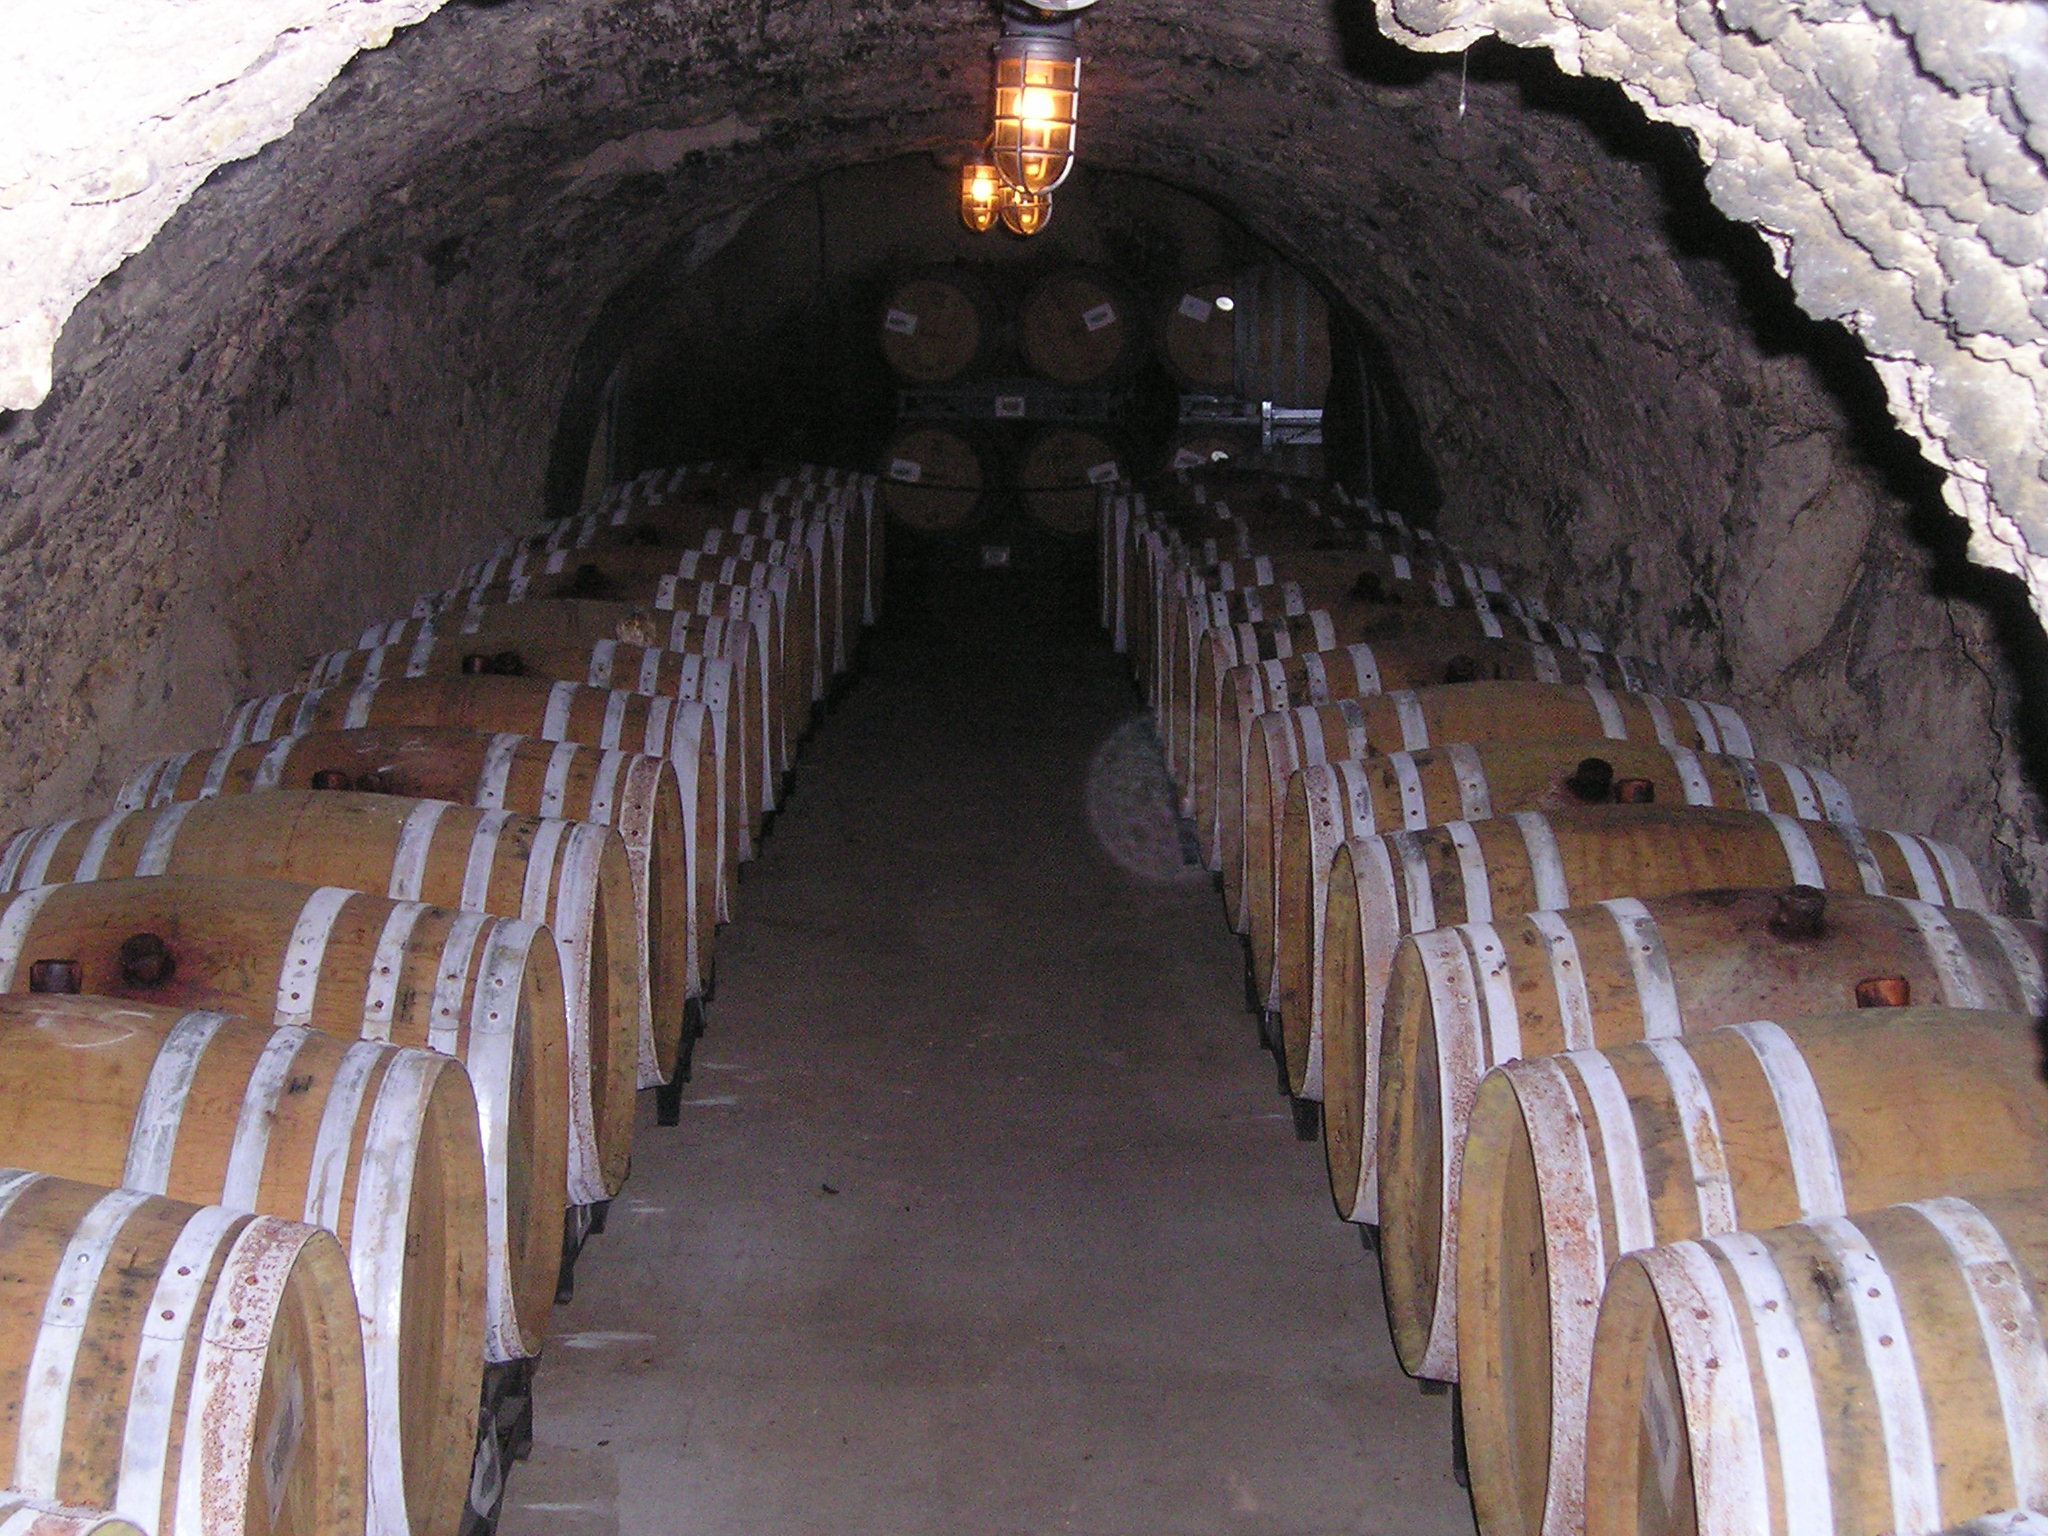 Barrel Cellar Major Aspects